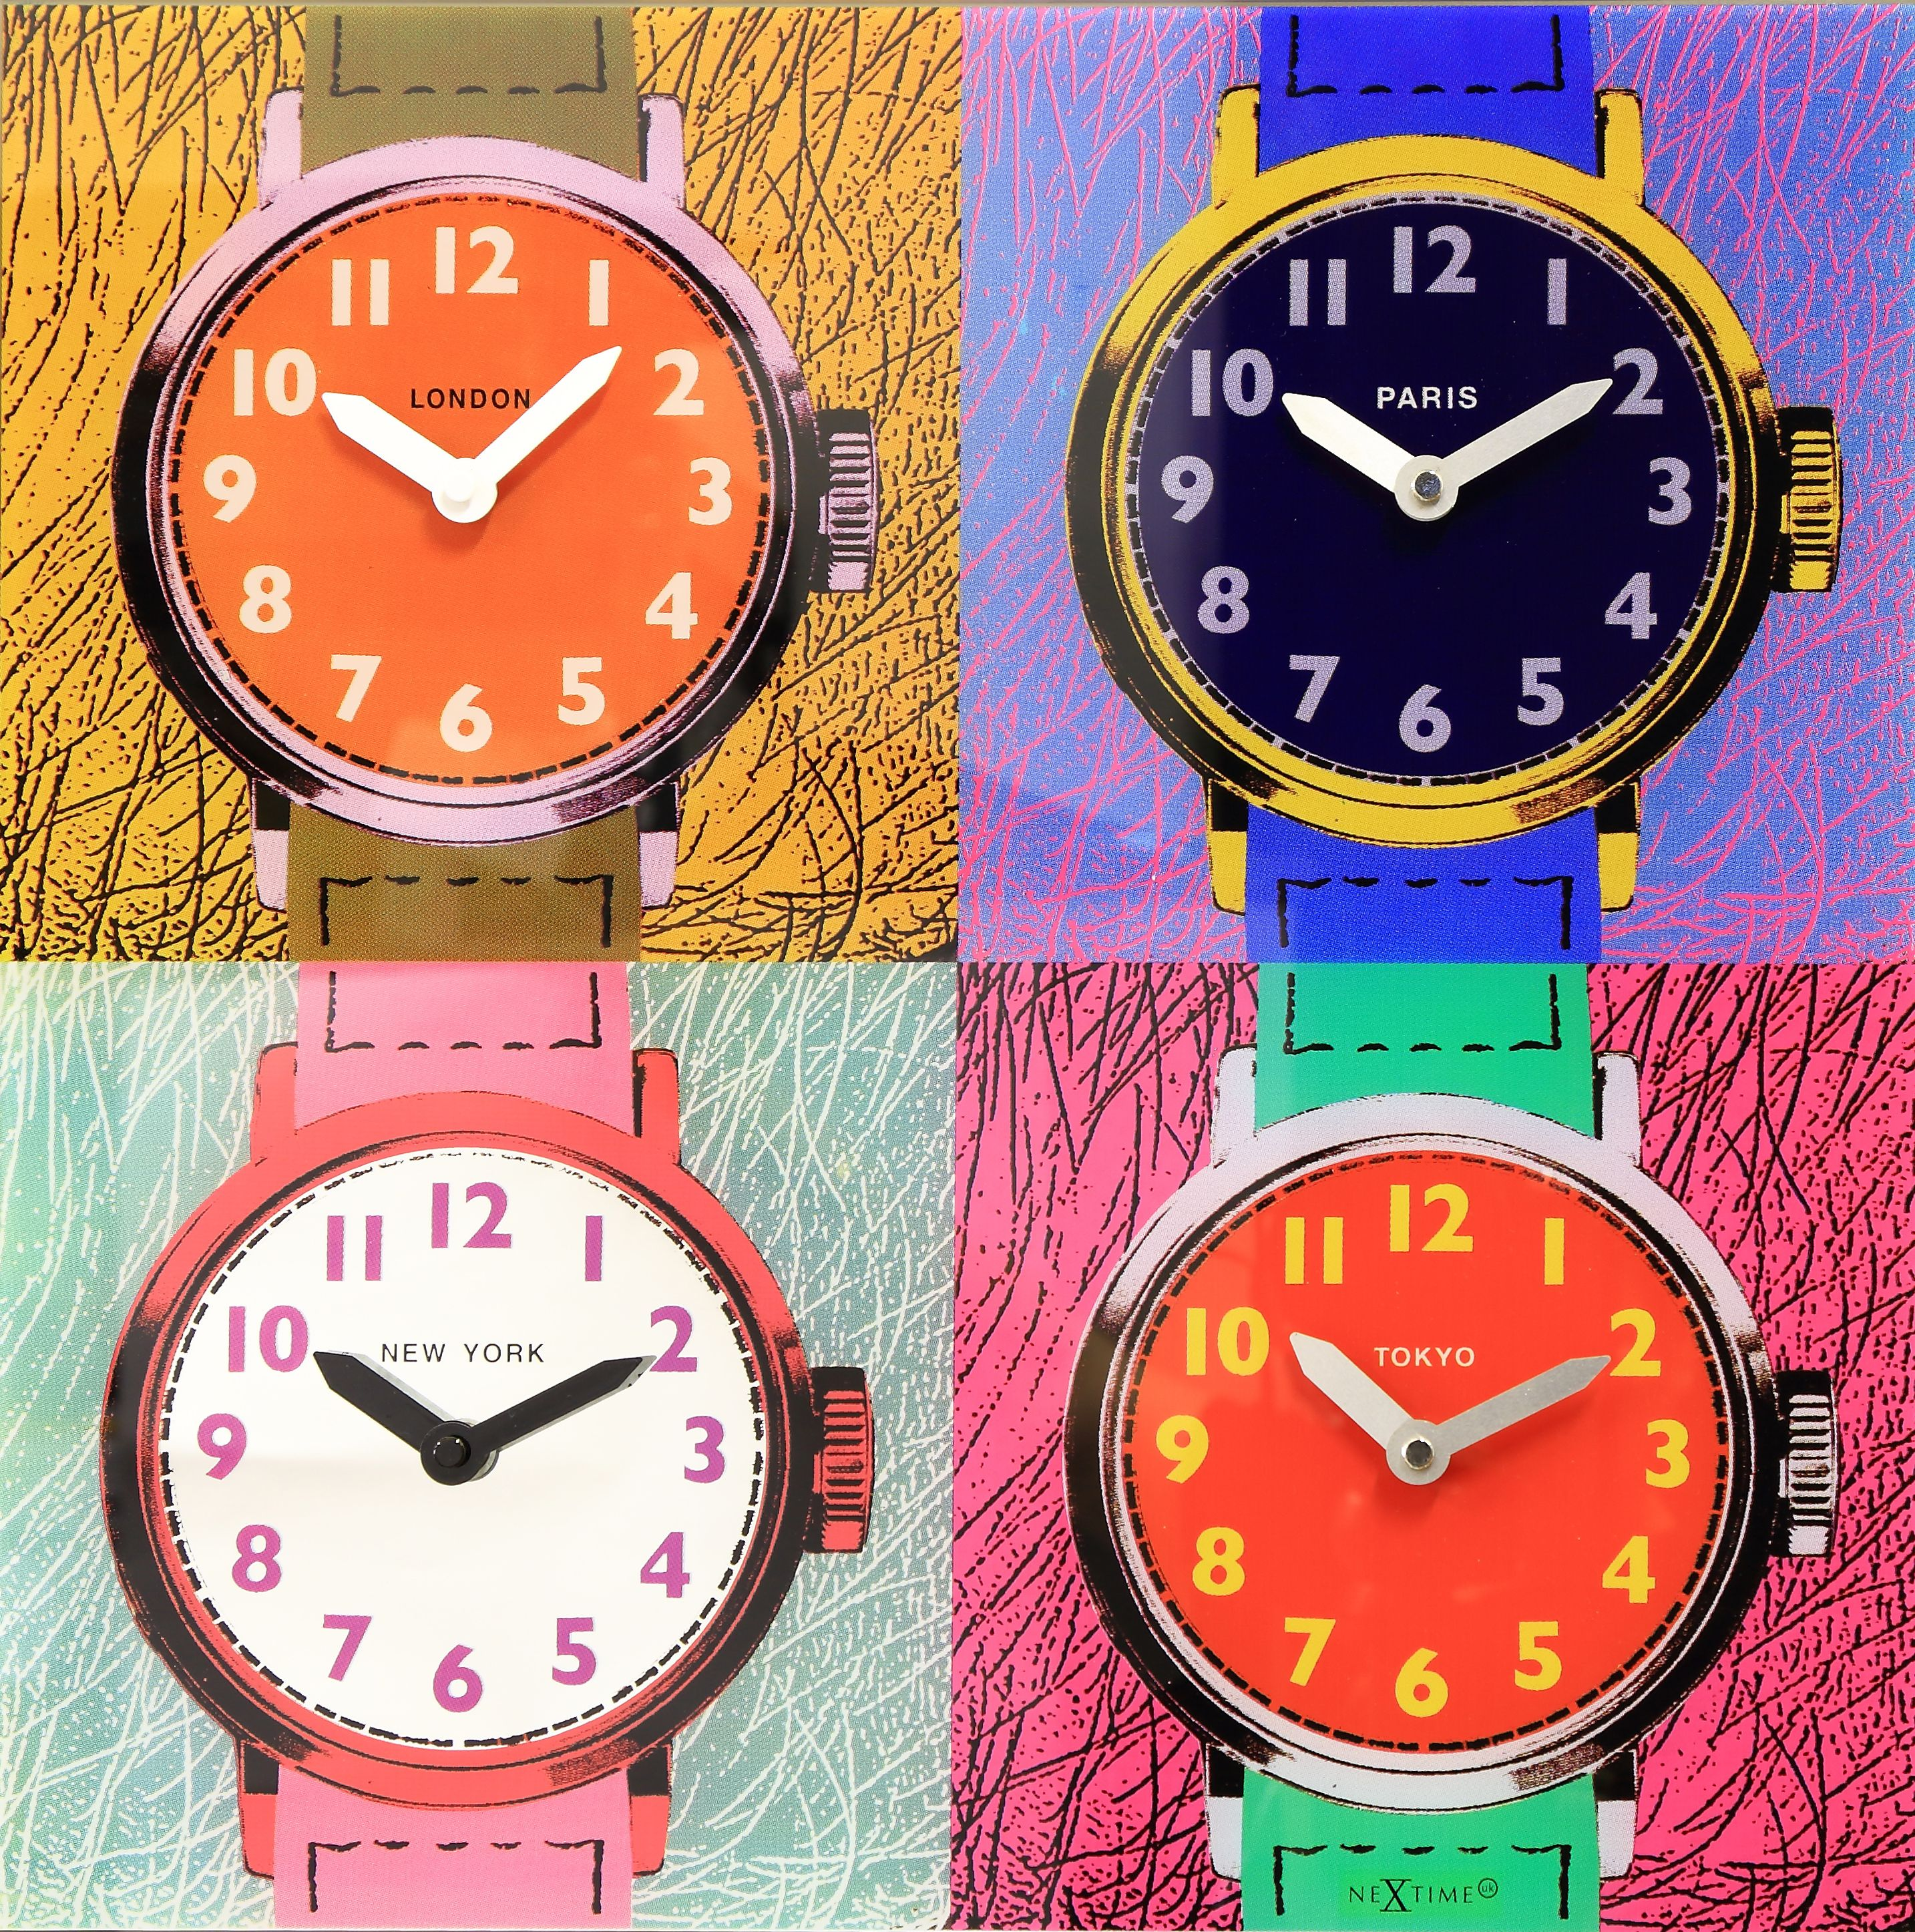 The Nextime Time Zones Clock Takes A Lot Of Influence From The Works Of  Andy Warhol And Makes An Impressive World Time Clock! This Designer Pop Art  Glass ...